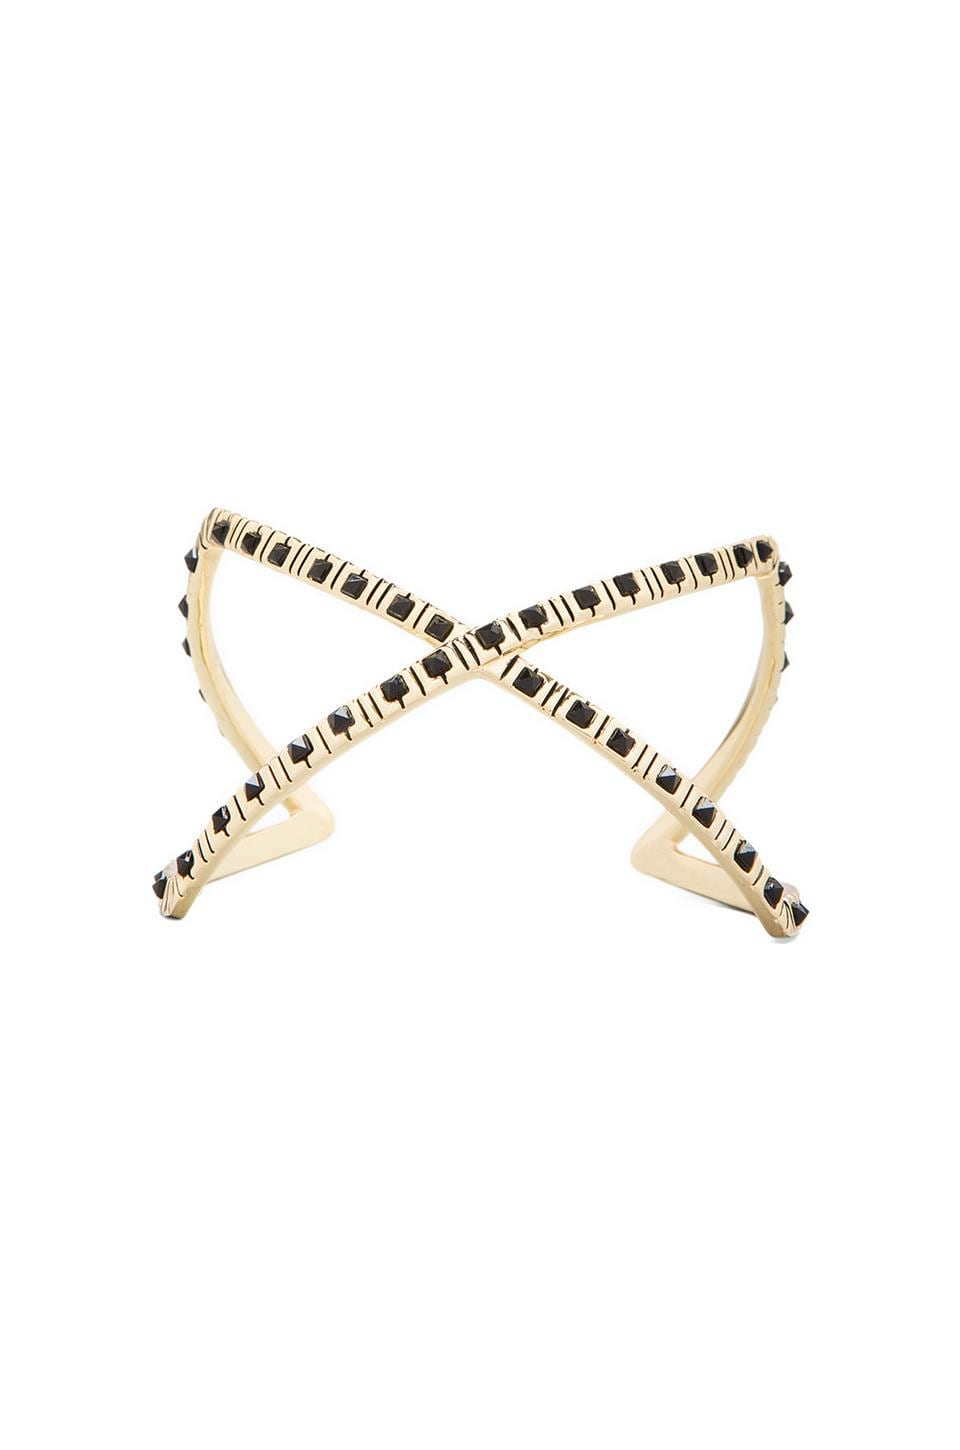 House of Harlow 1960 House of Harlow Keyboard Cuff in Gold